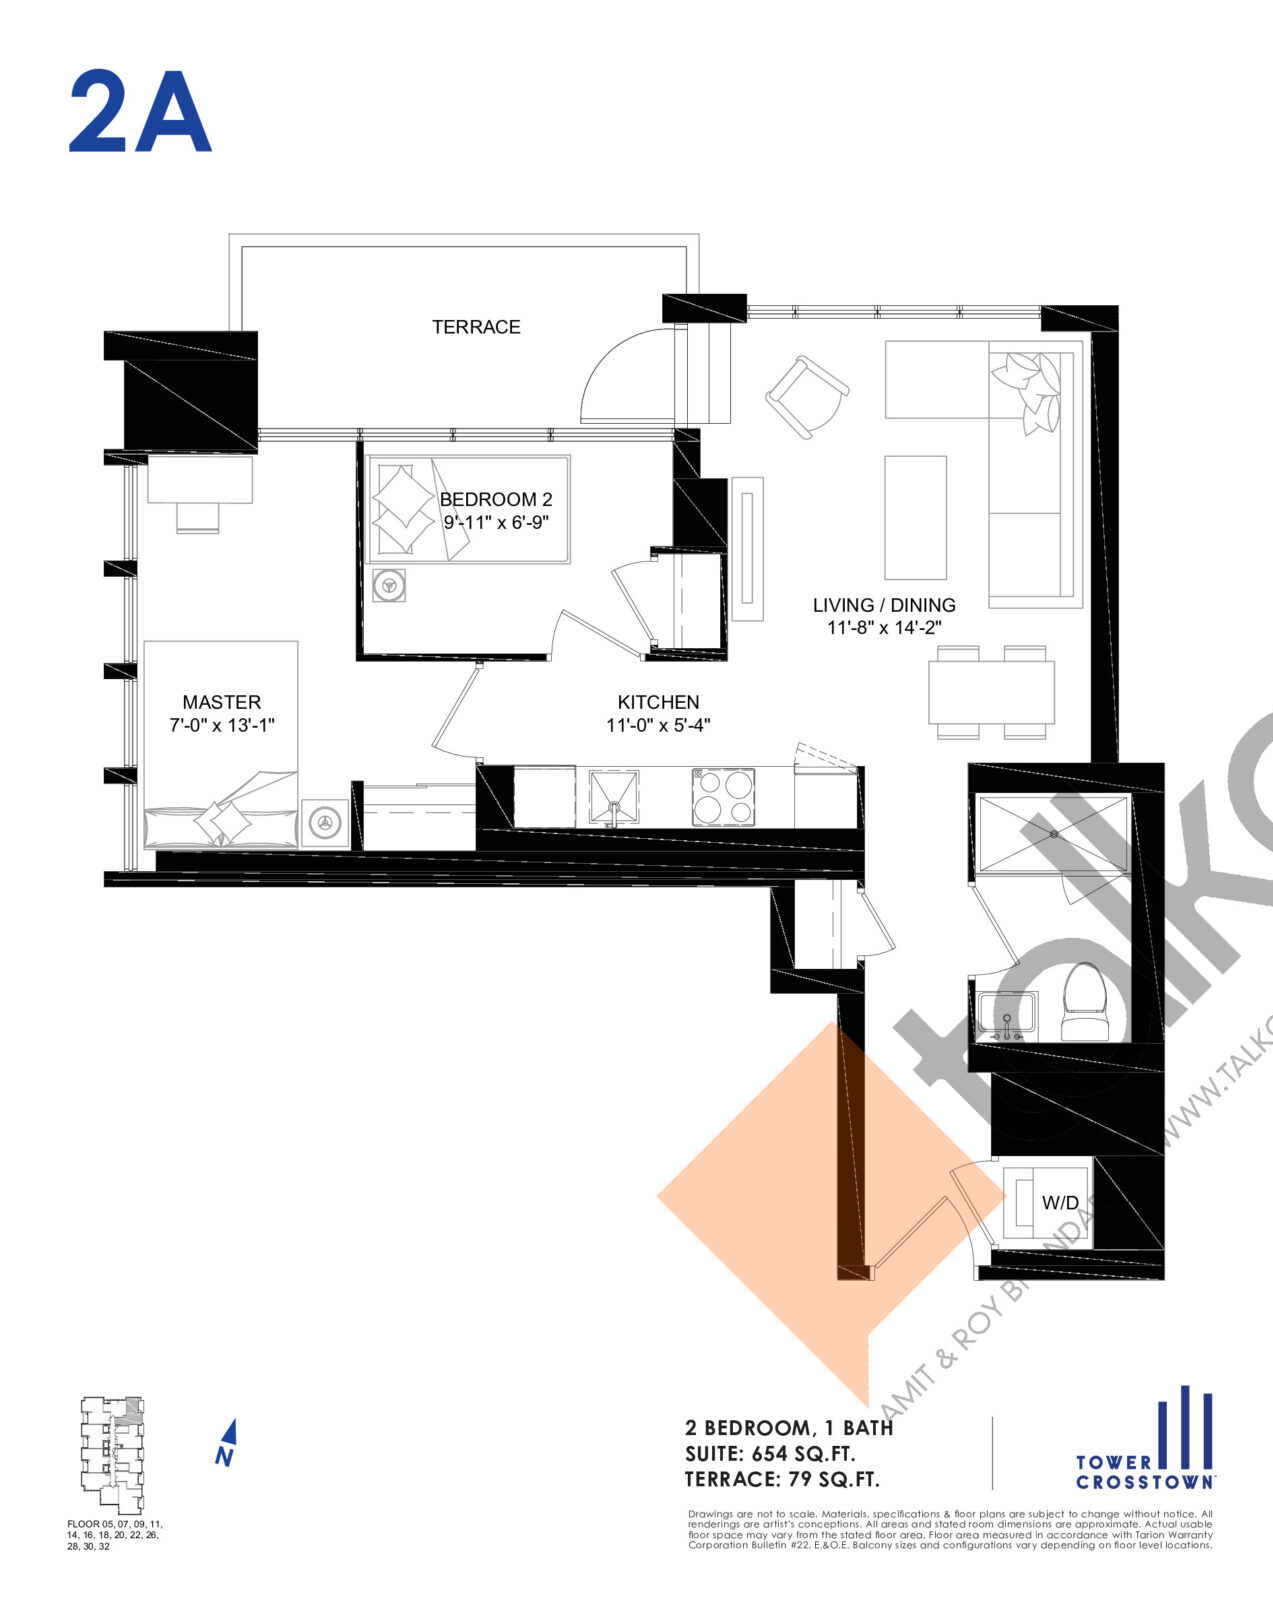 2A Floor Plan at Crosstown Tower 3 Condos - 654 sq.ft